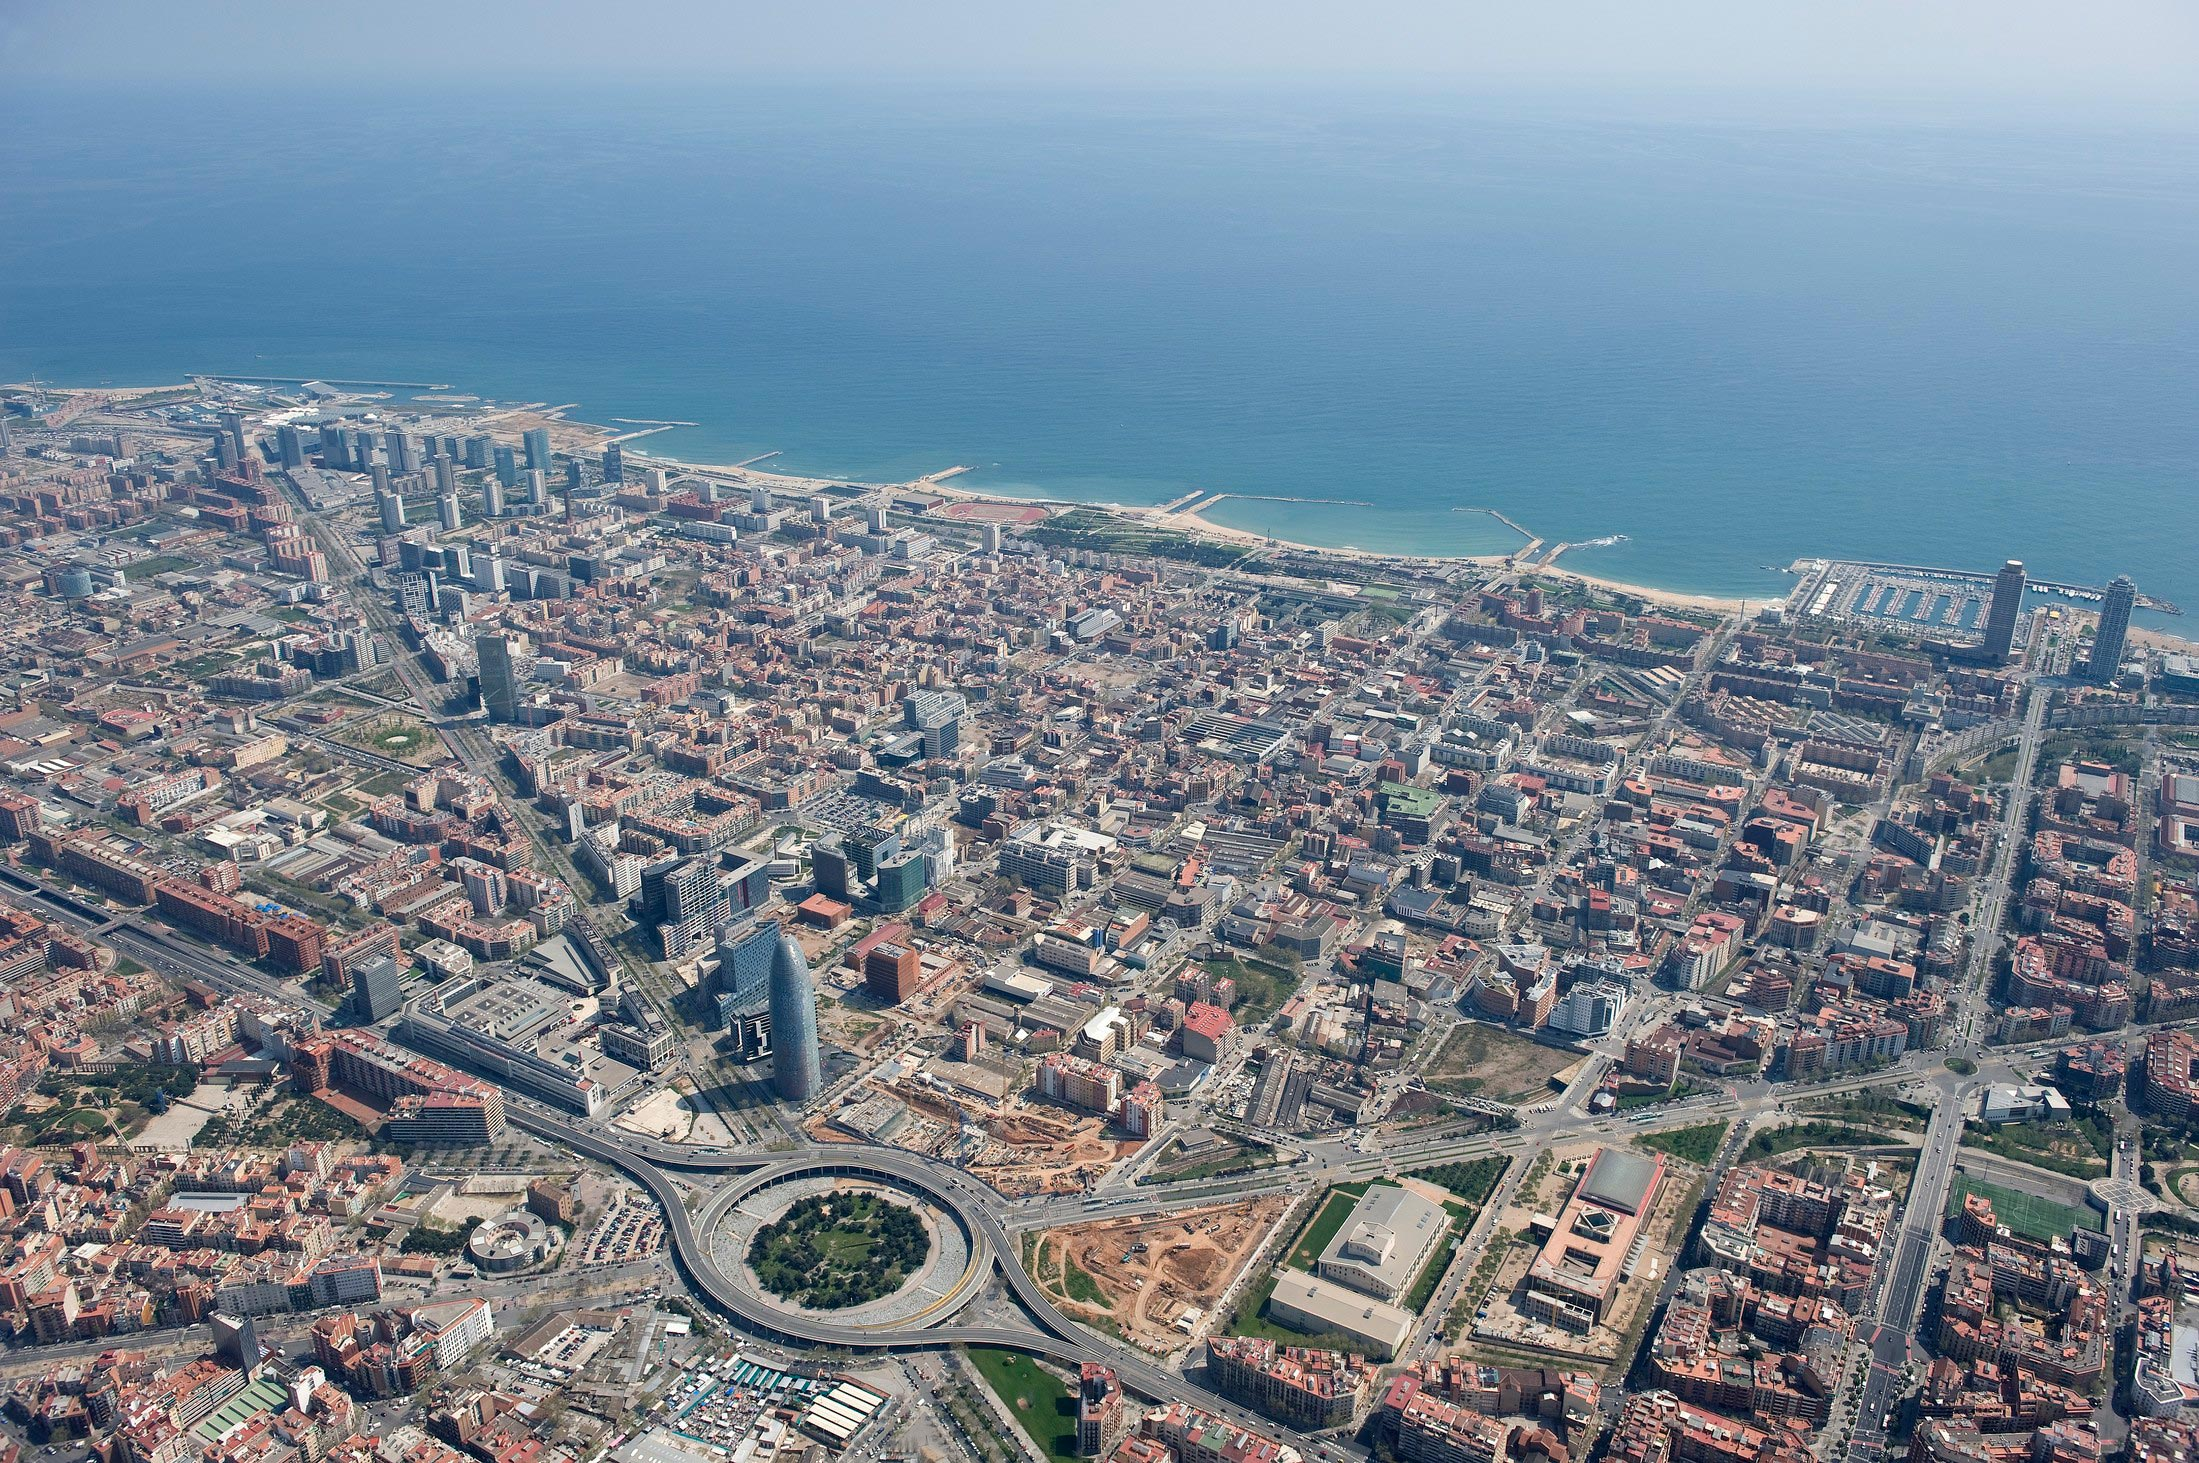 OUR OFFICE IS LOCATED AT BARCELONA'S 22@ INNOVATIVE DISTRICT